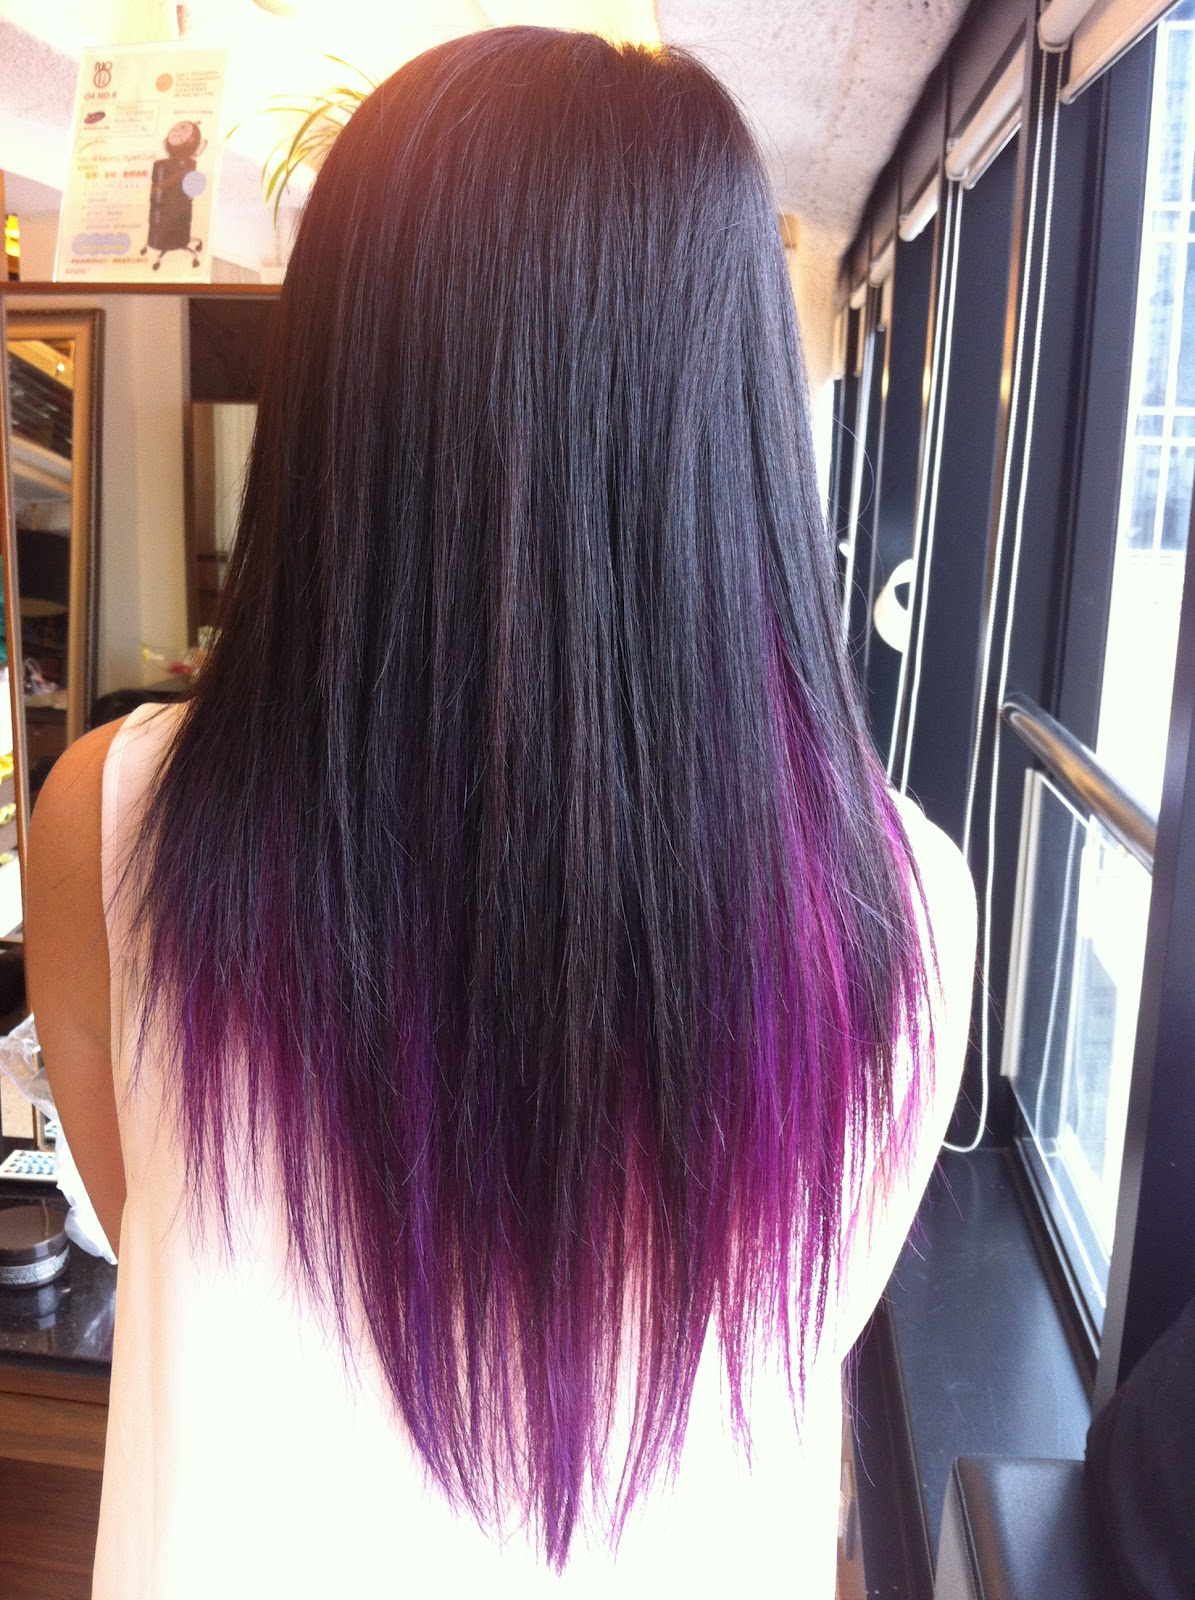 Black Hair With Purple Underlayer Images & Pictures - Becuo